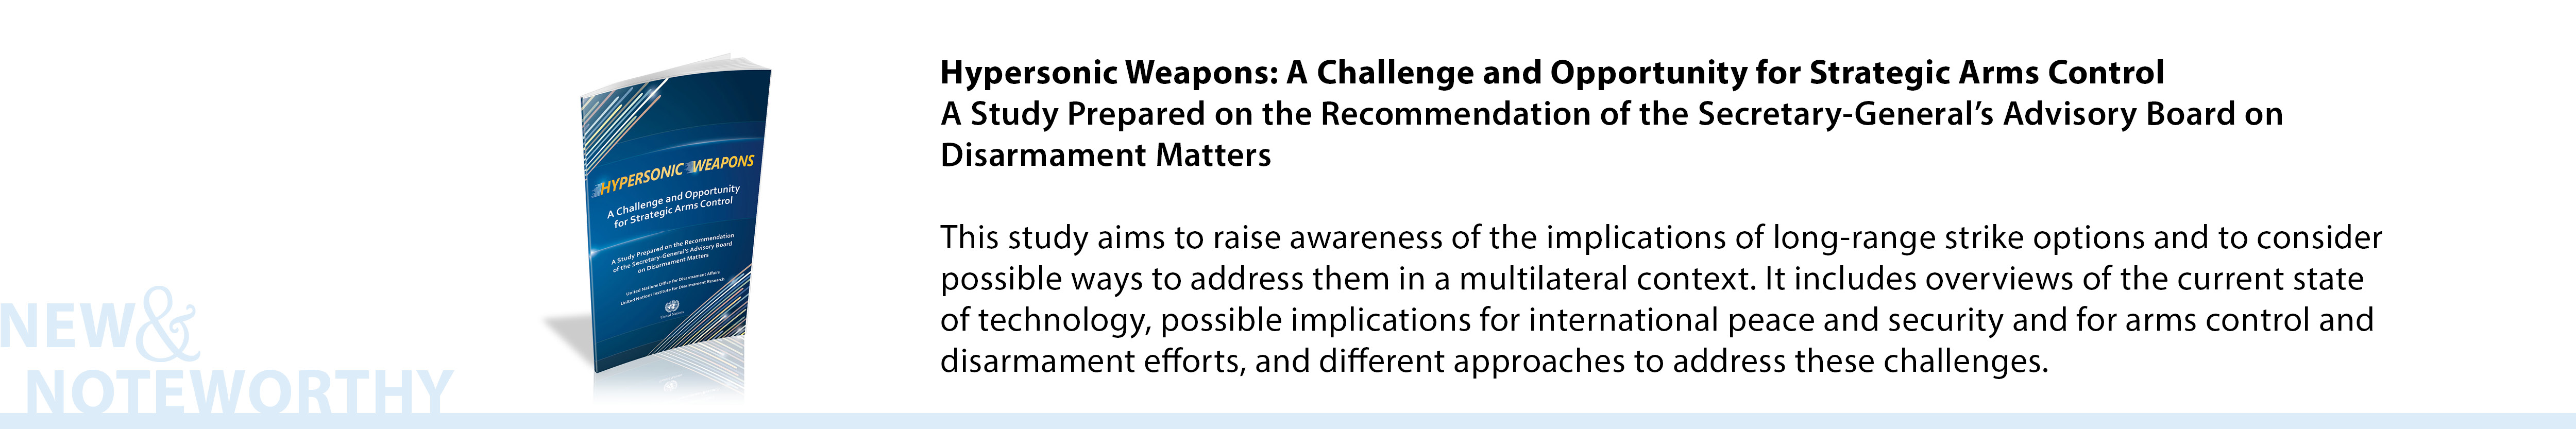 Hypersonic Weapons: A Challenge and Opportunity for Strategic Arms Control - A Study Prepared on the Recommendation of the Secretary-General's Advisory Board on Disarmament Matters - This study aims to raise awareness of the implications of long-range strike options and to consider possible ways to address them in a multilateral context. It includes overviews of the current state of technology, possible implications for international peace and security and for arms control and disarmament efforts, and different approaches to address these challenges.